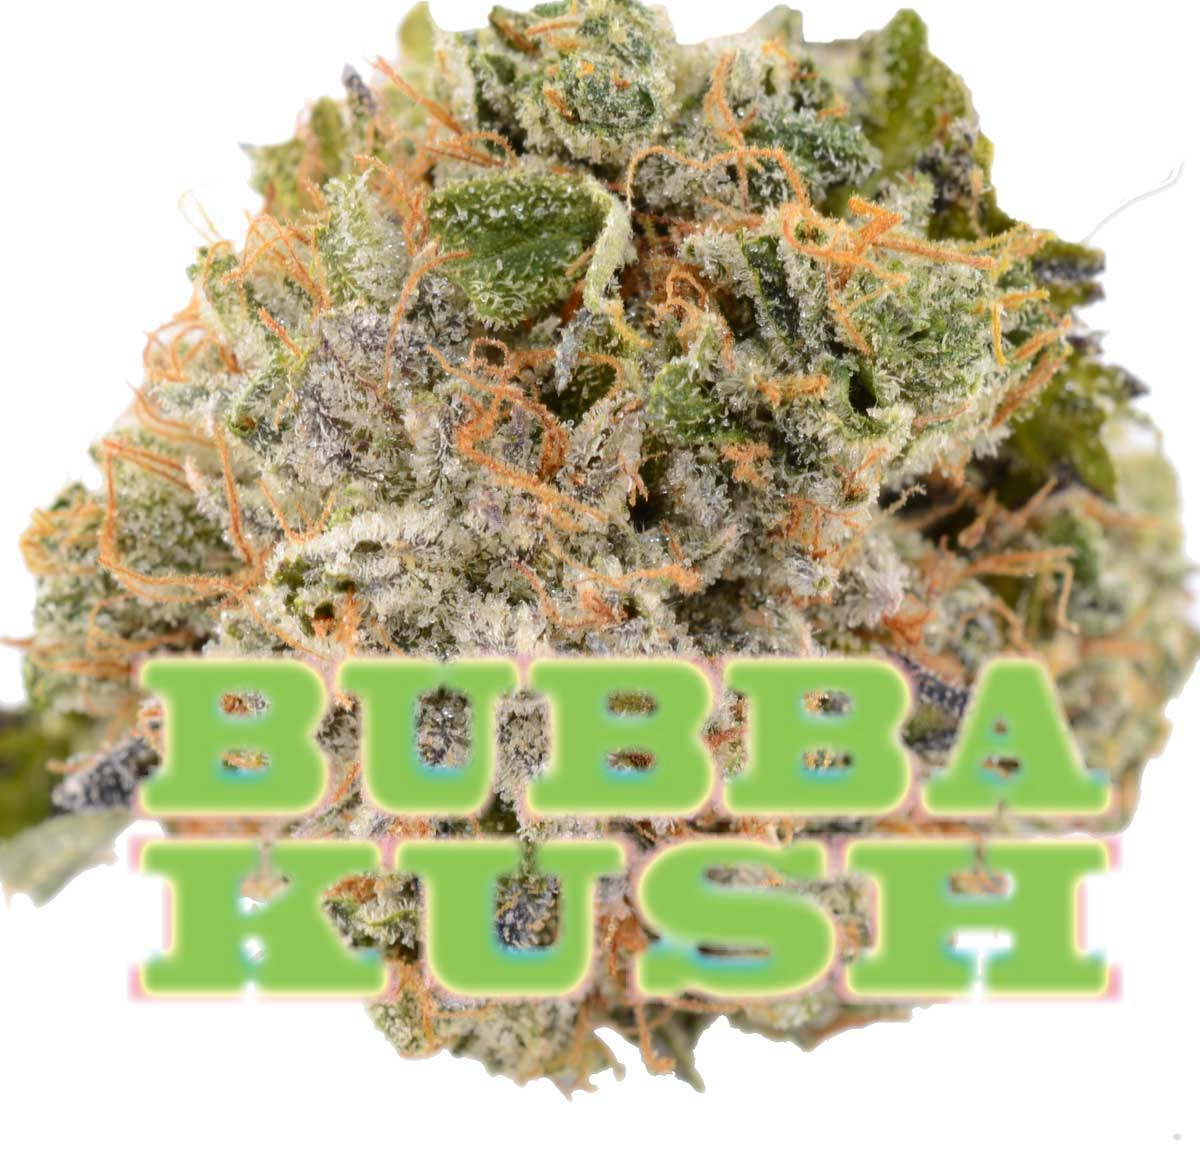 Bubba Kush by BC Bud Store - Image © 2018 BC Bud Store. All Rights Reserved.